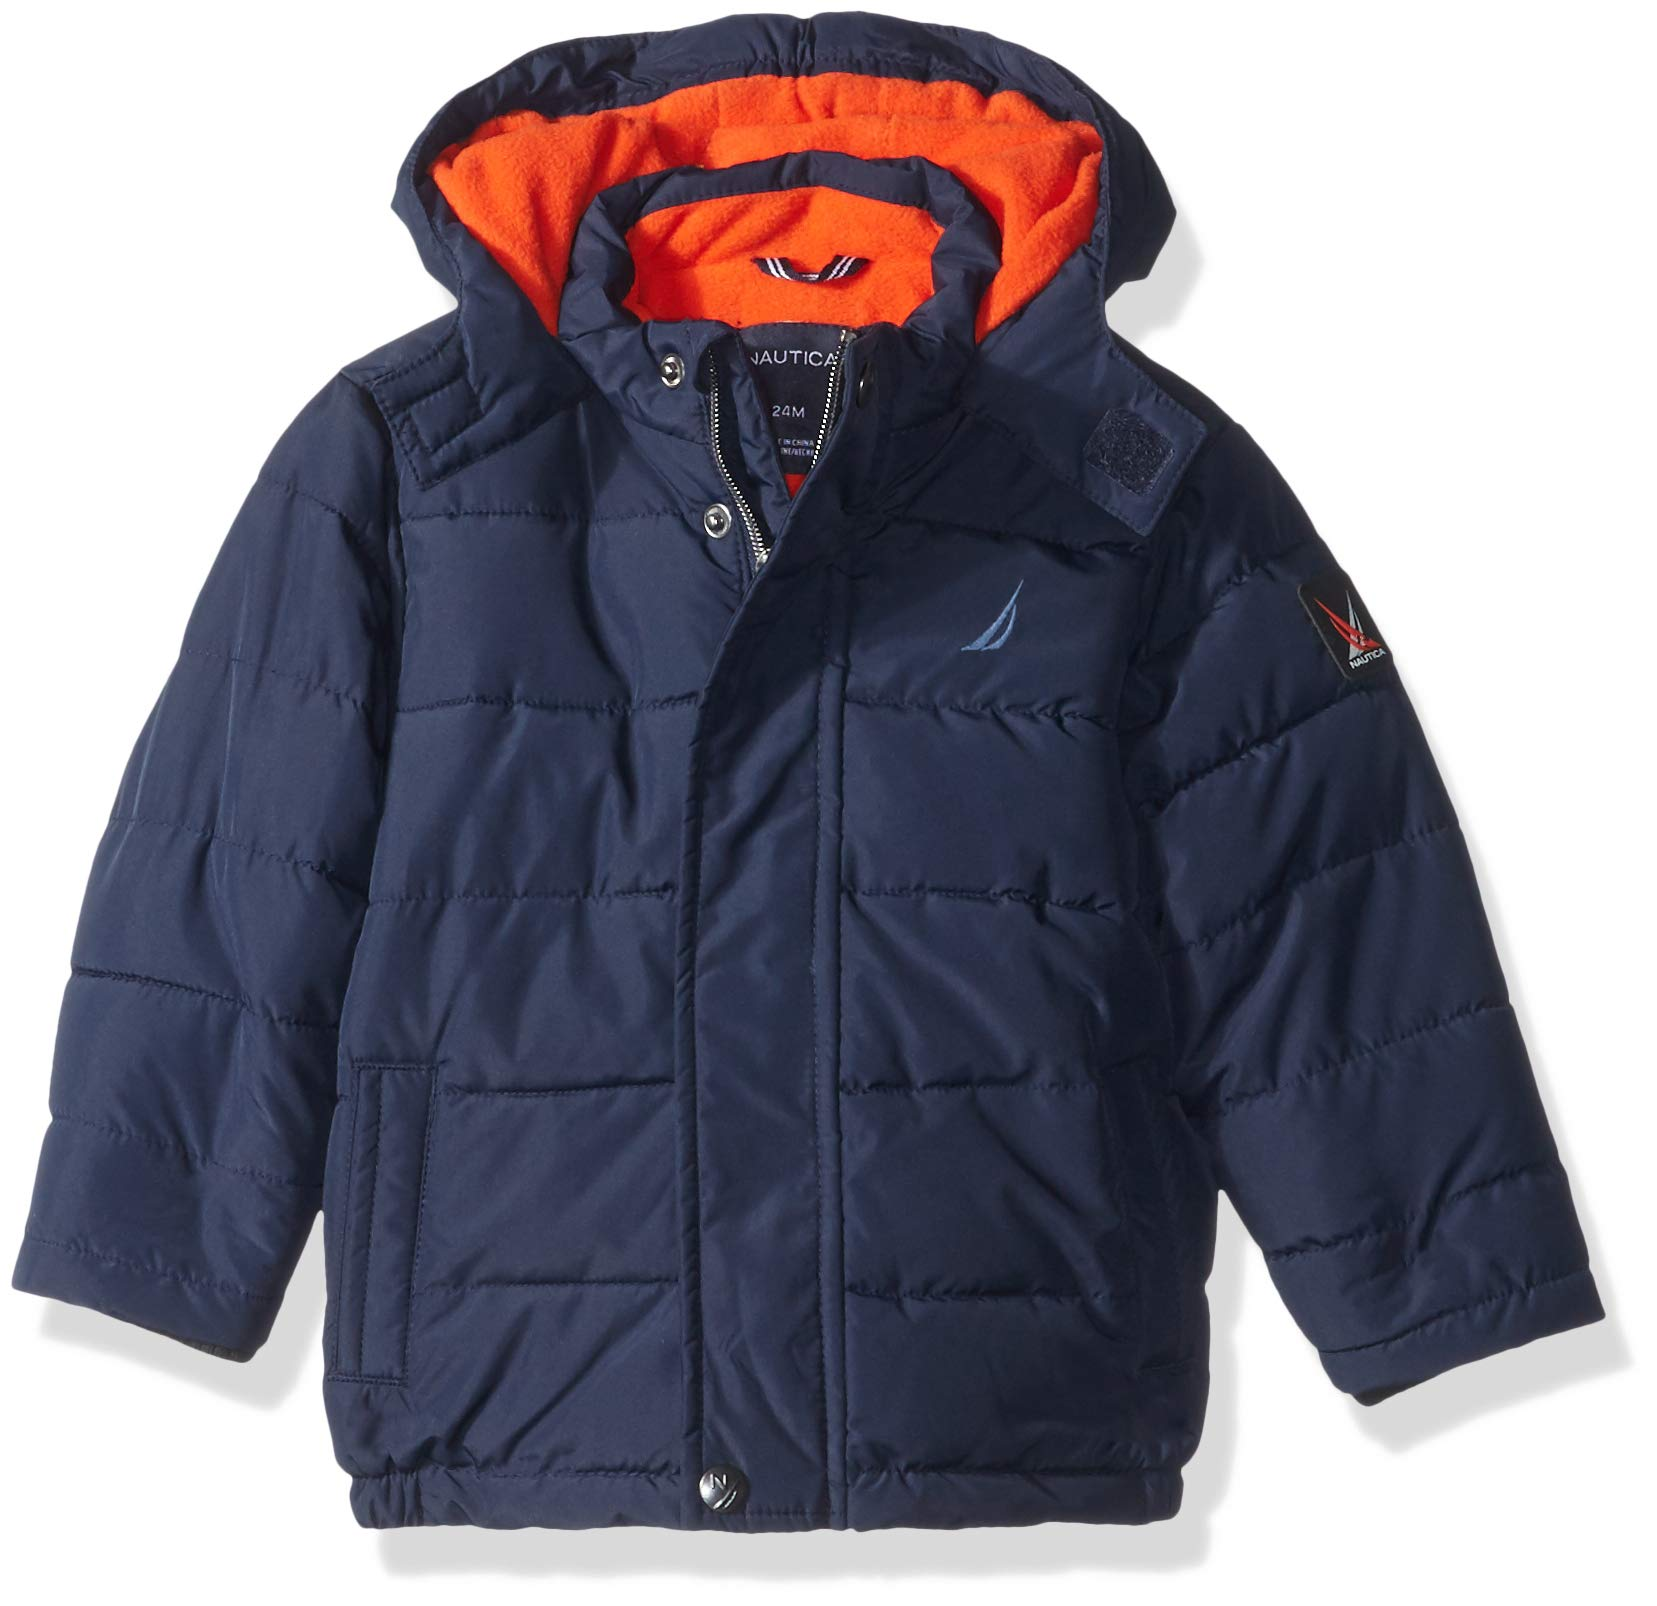 Nautica Baby Boys Signature Puffer Jacket with Storm Cuffs, Sport Navy, 18 Months by Nautica